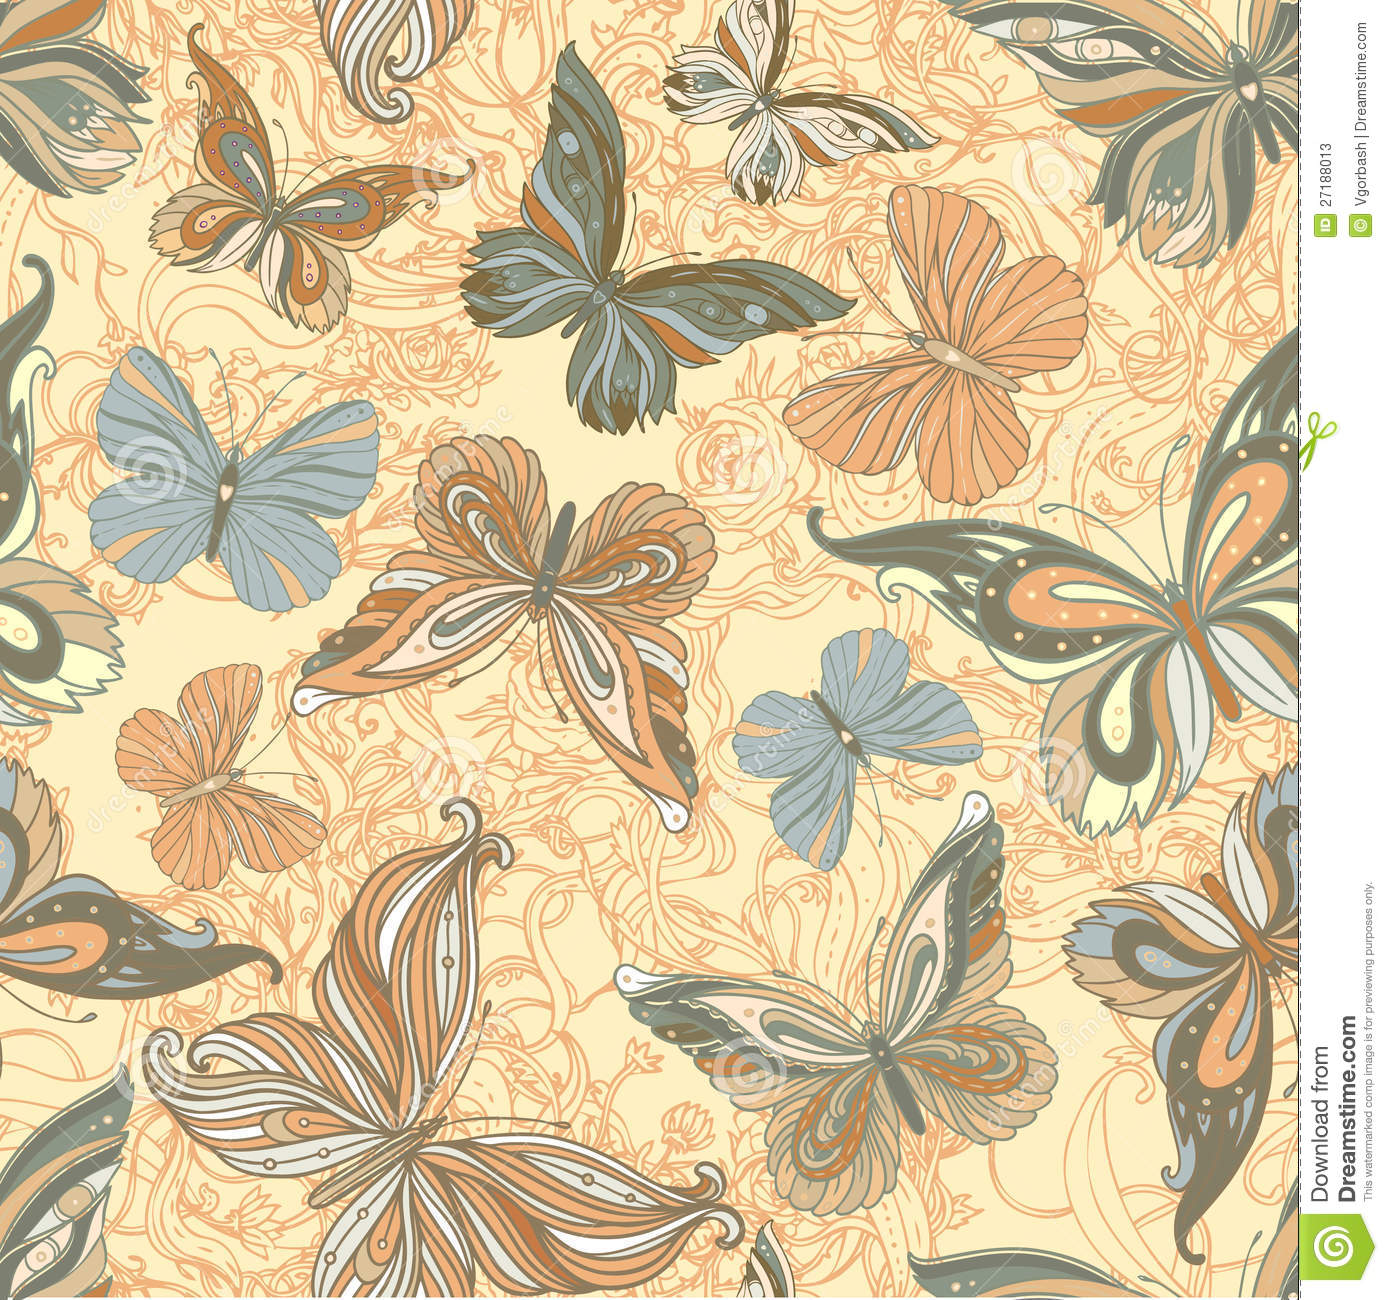 Free Country Fall Wallpaper Seamless Vintage Patterned Butterfly Background Stock